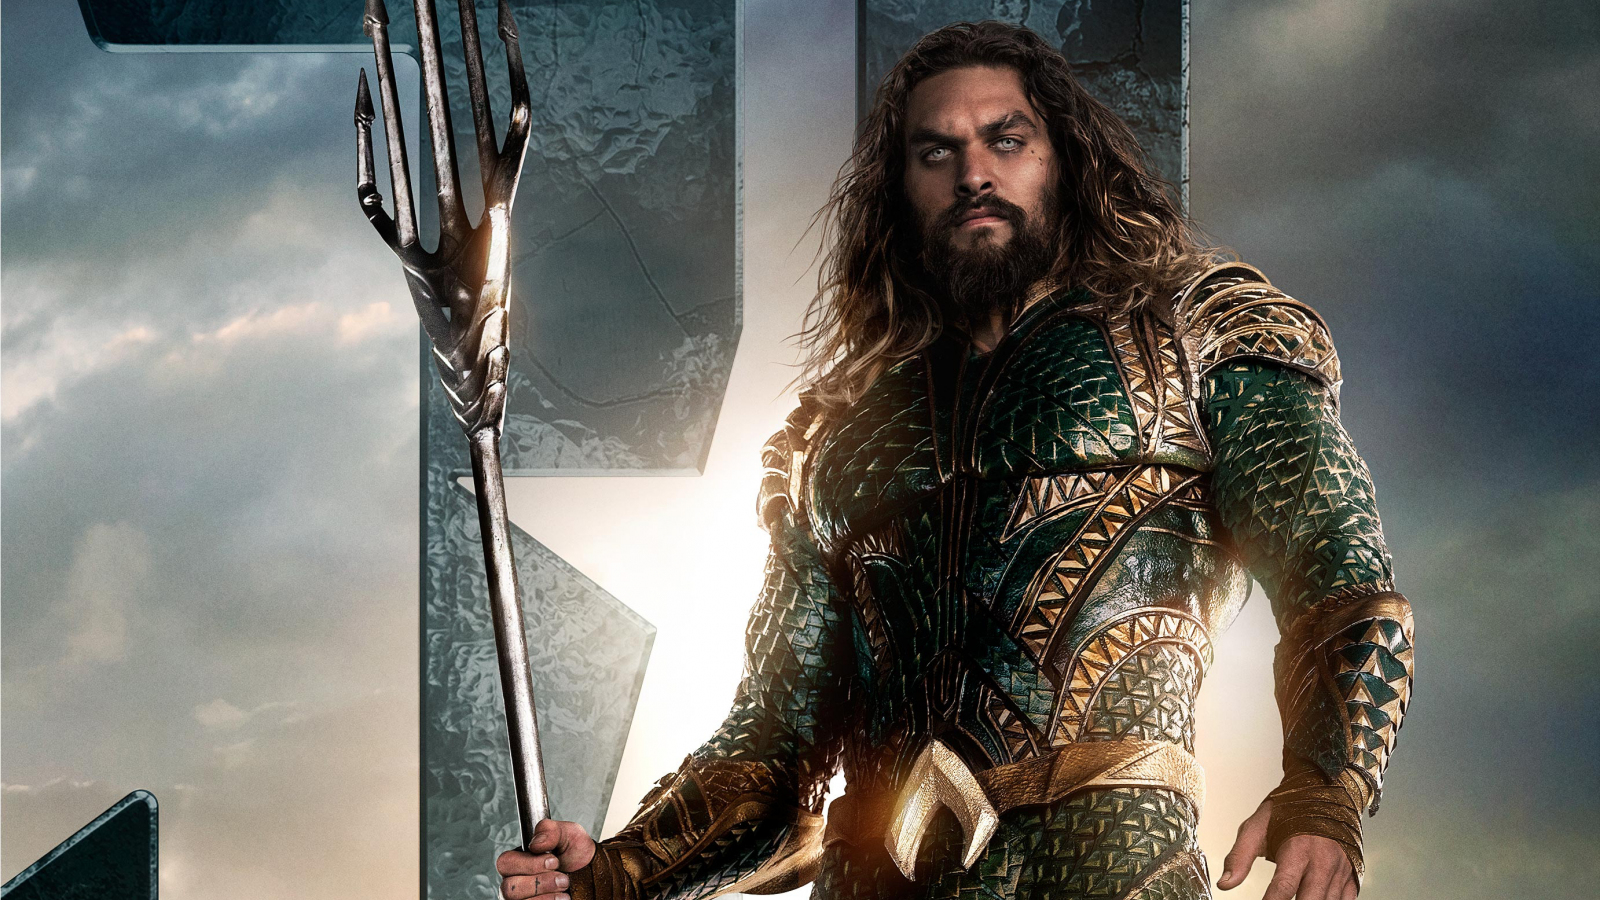 Download 1600x900 Wallpaper Jason Momoa As Aquaman In Justice League Movie Widescreen 16 9 Widescreen 1600x900 Hd Image Background 13225